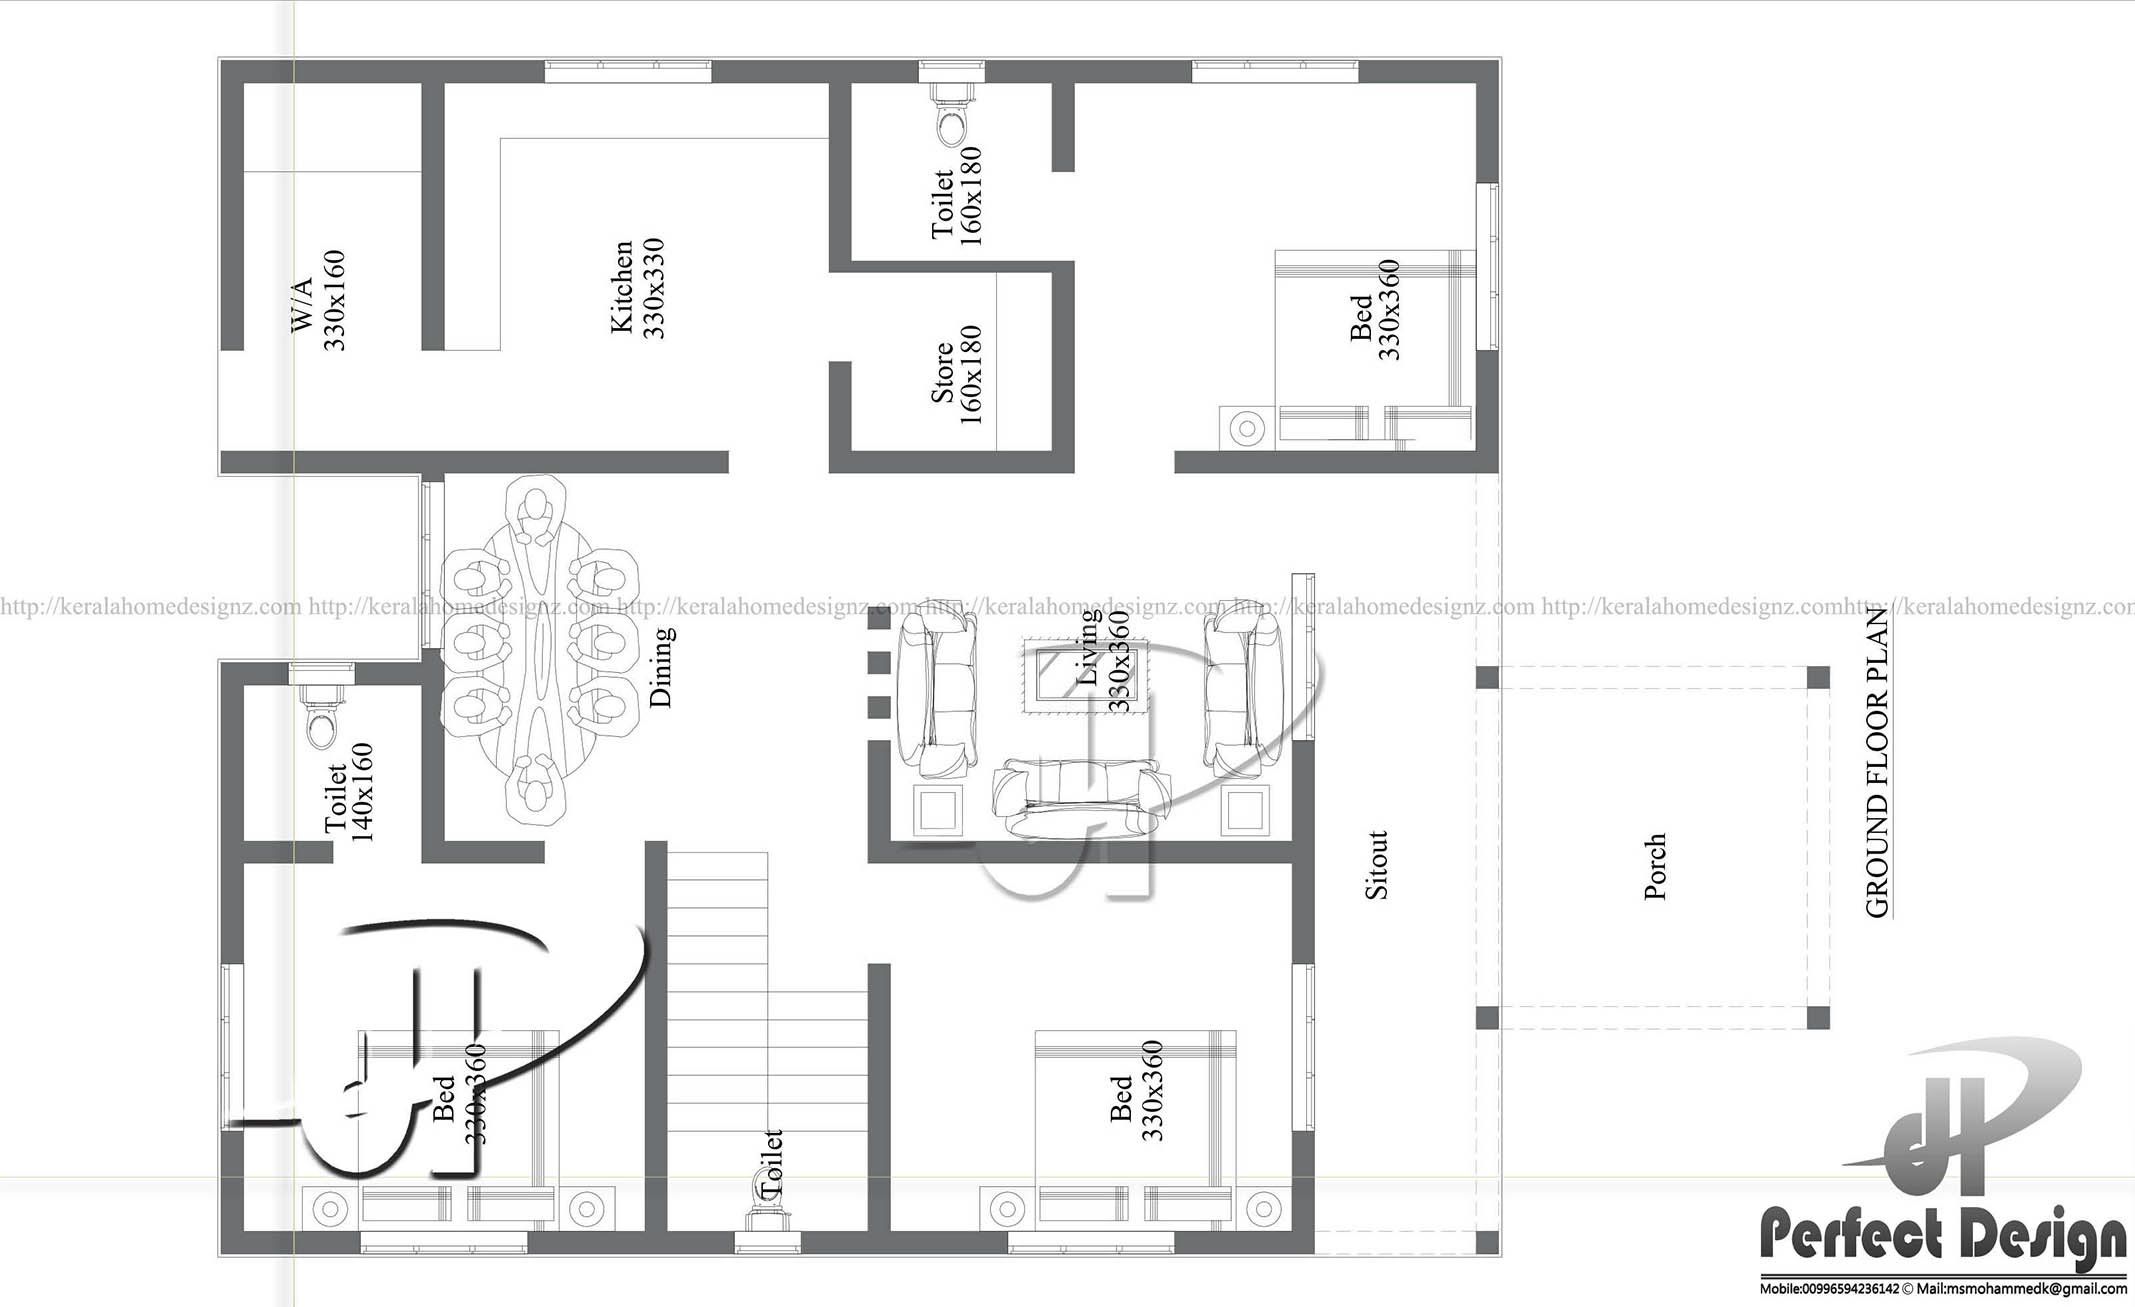 100 Square Meters To Square Feet 1141 Square Feet